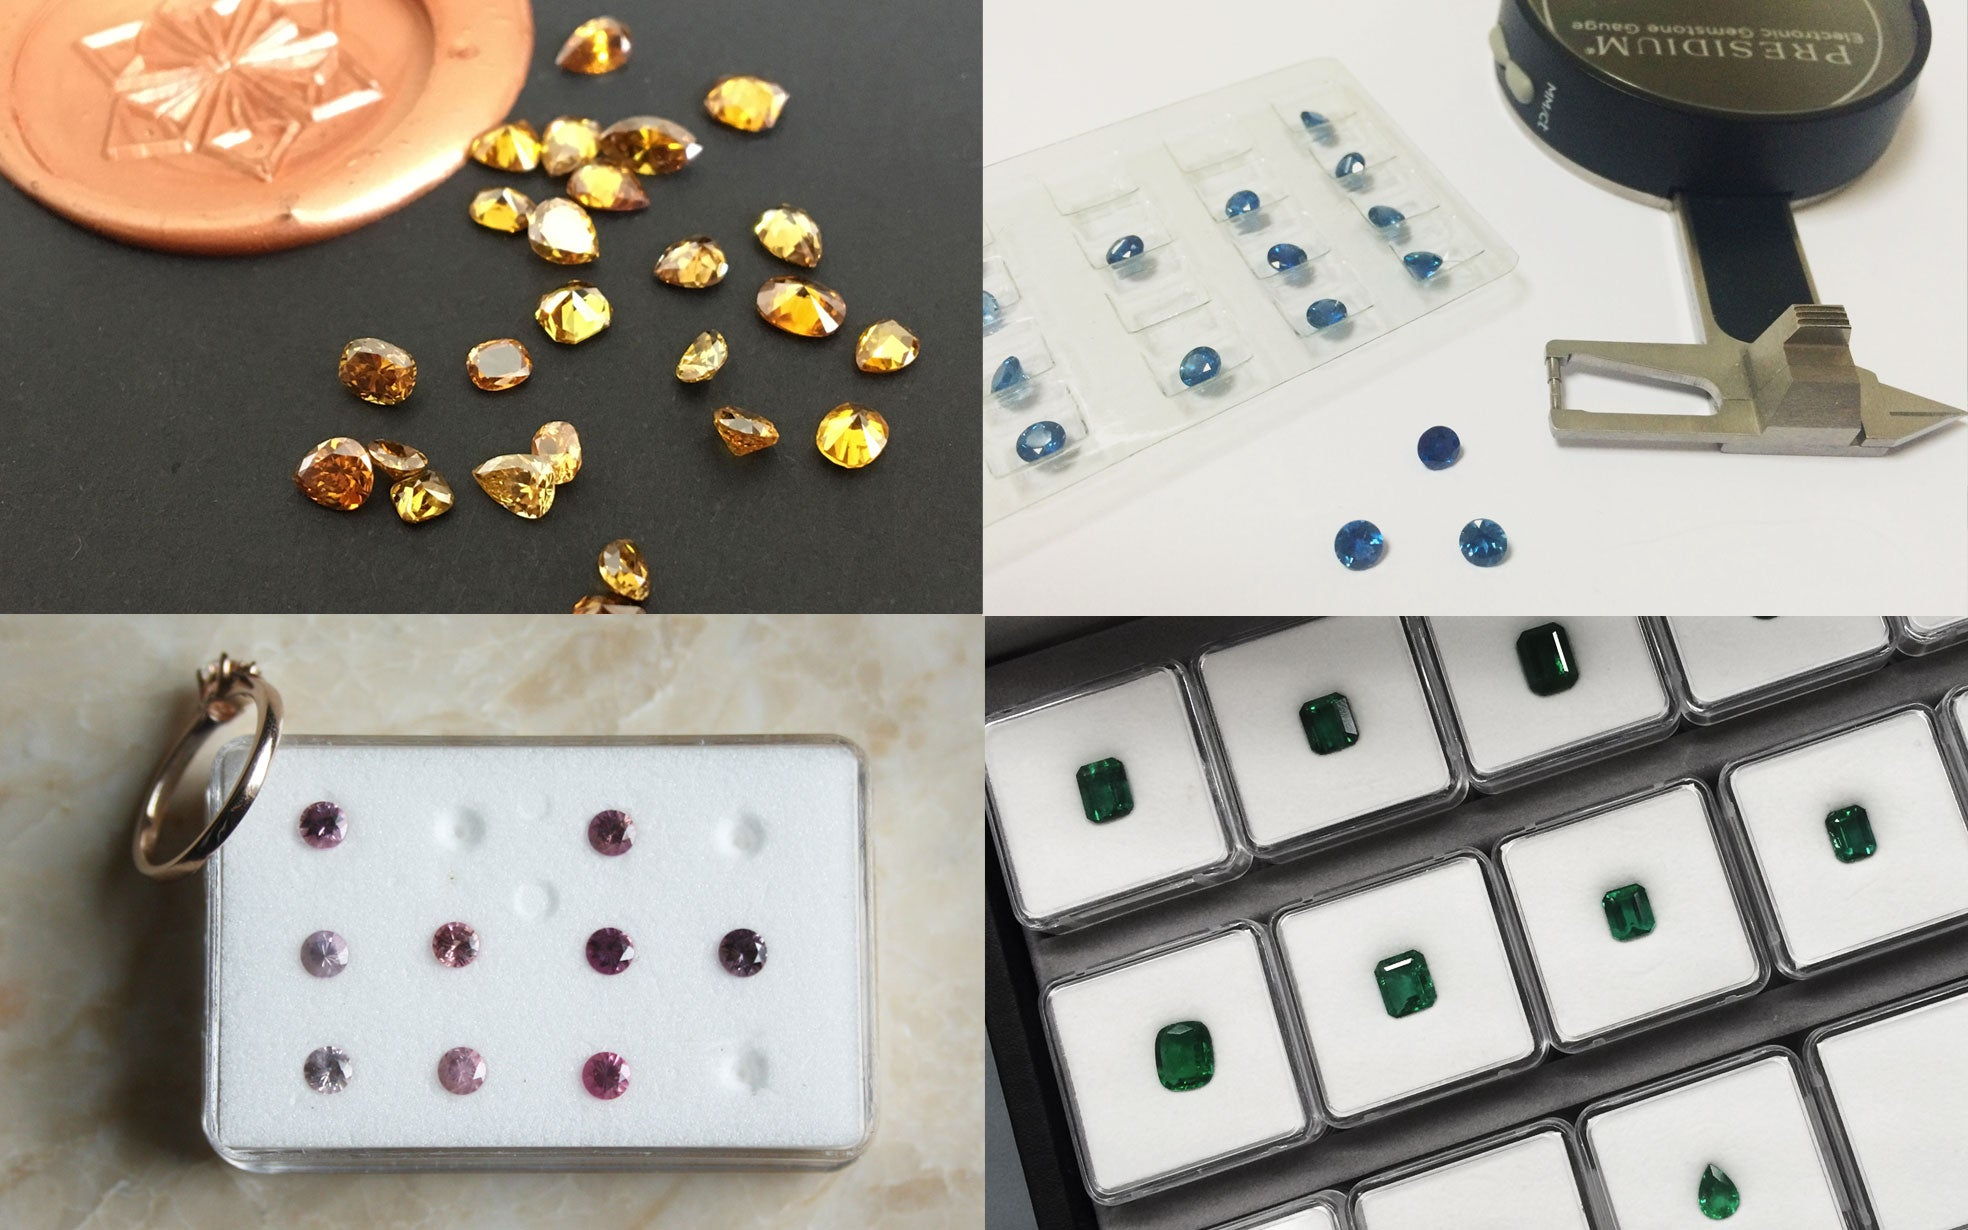 Beautiful ethics fairtrade gemstones